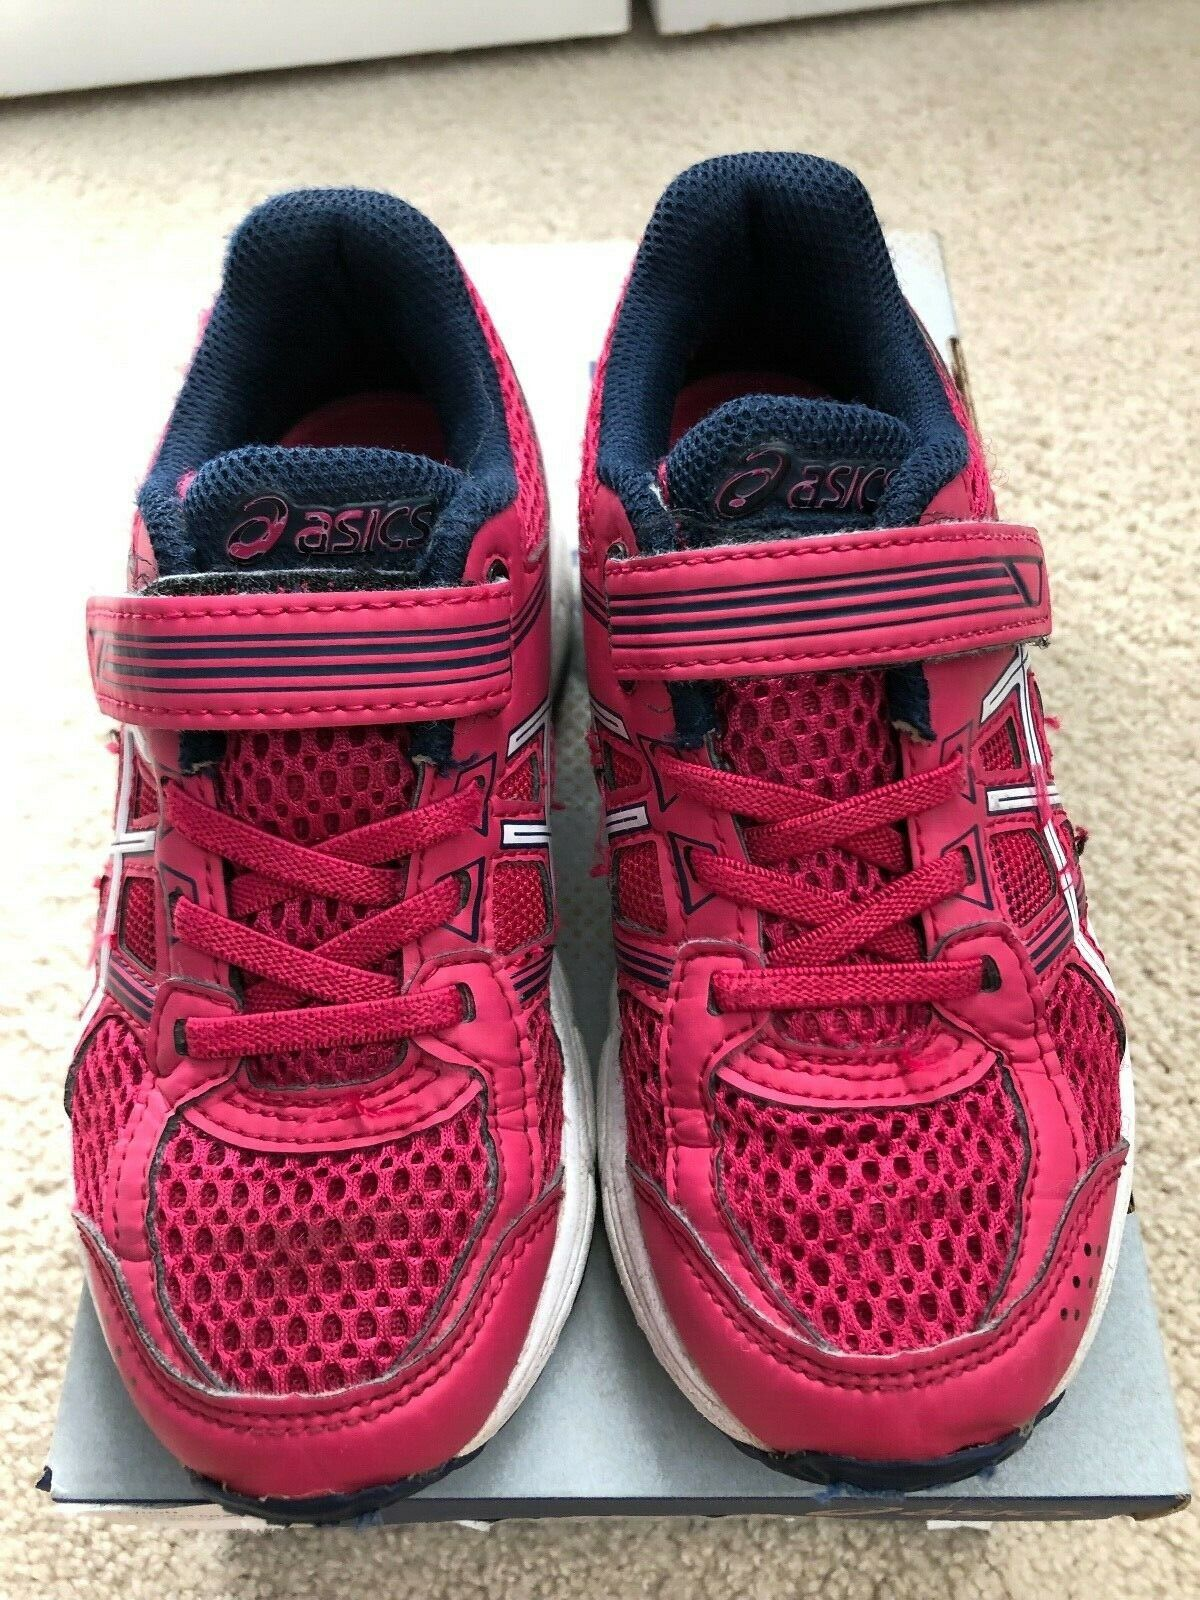 NWOB ASICS Girls Pre-contend 4 PS